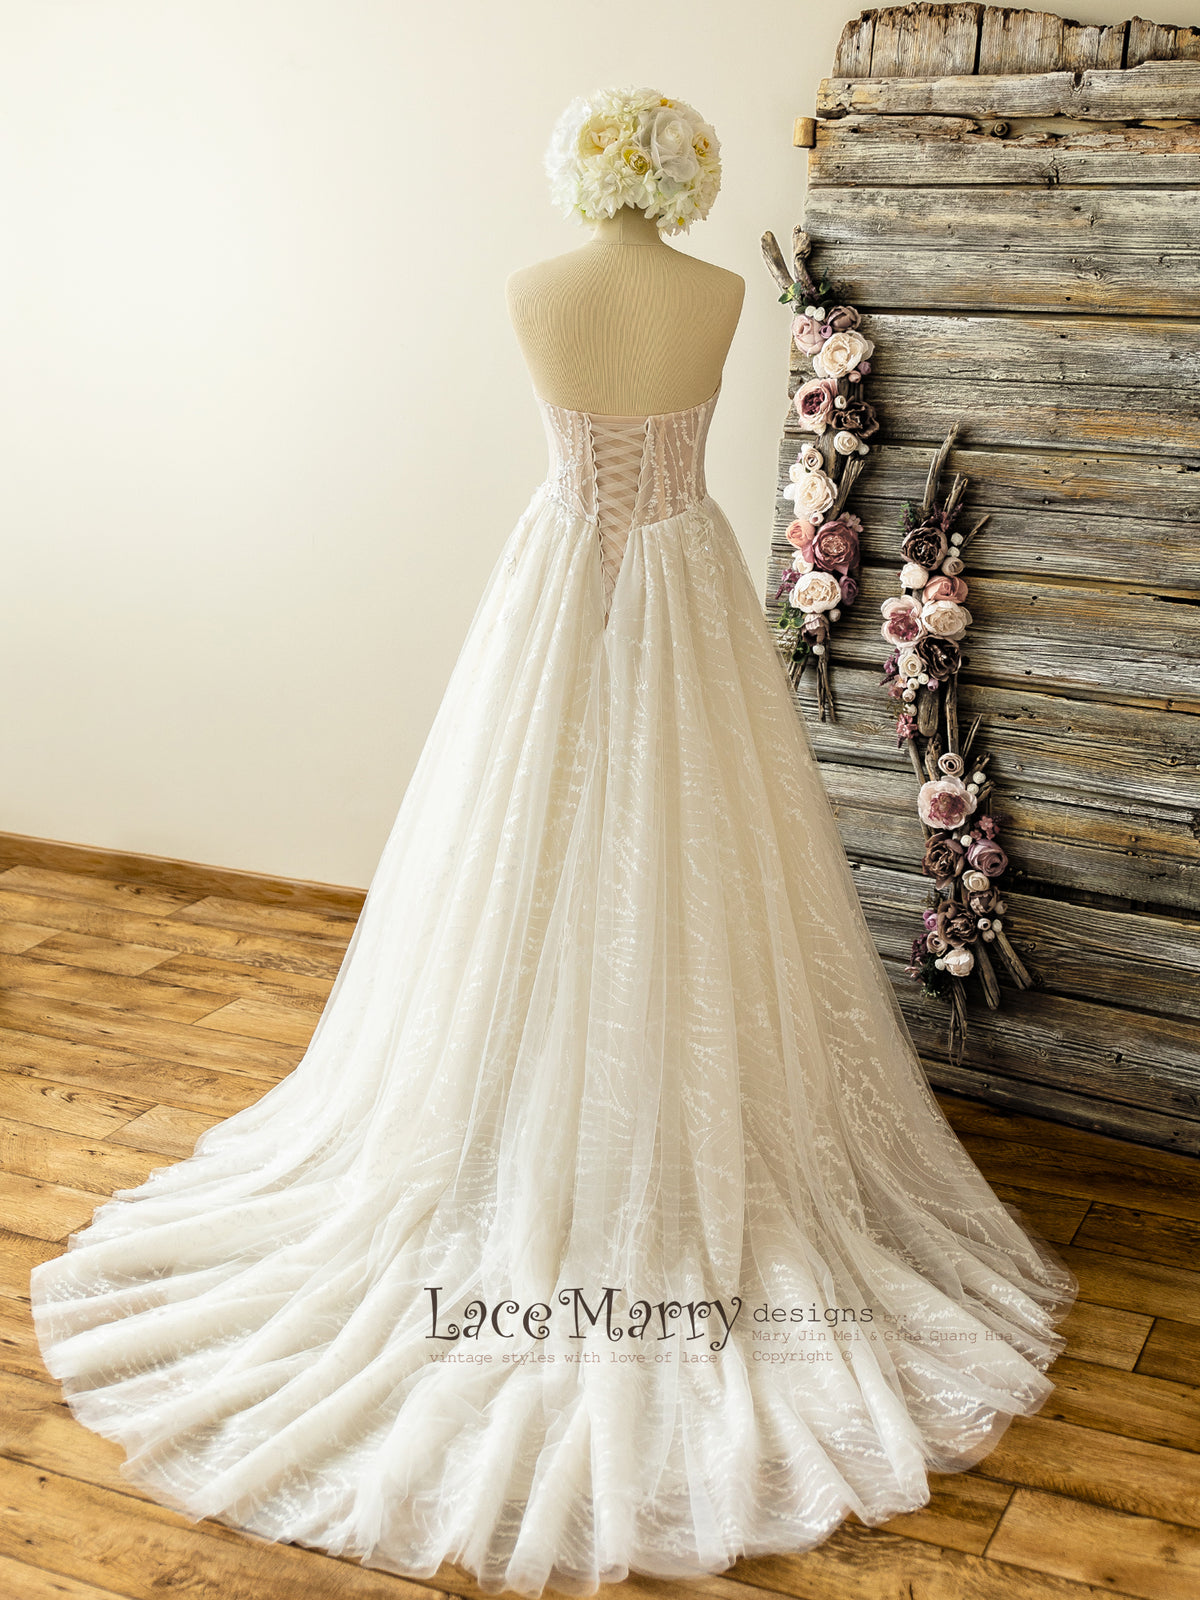 Strapless Wedding Dress with Hand Beading